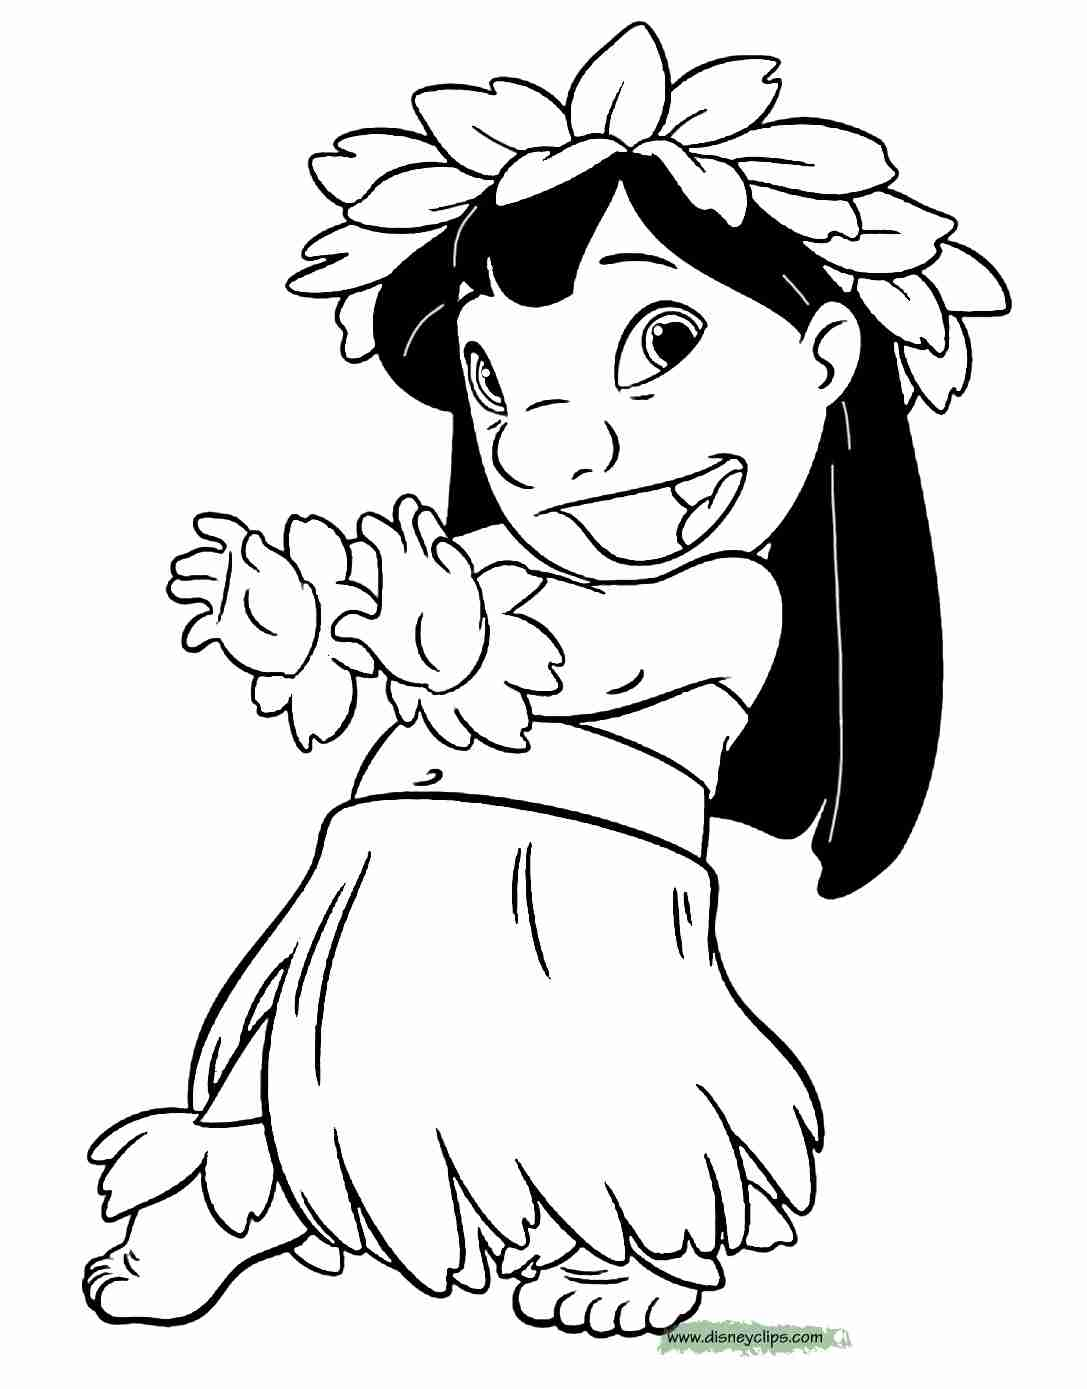 1087x1389 Best Lilo And Stitch Coloring Pages For Free Coloring Book